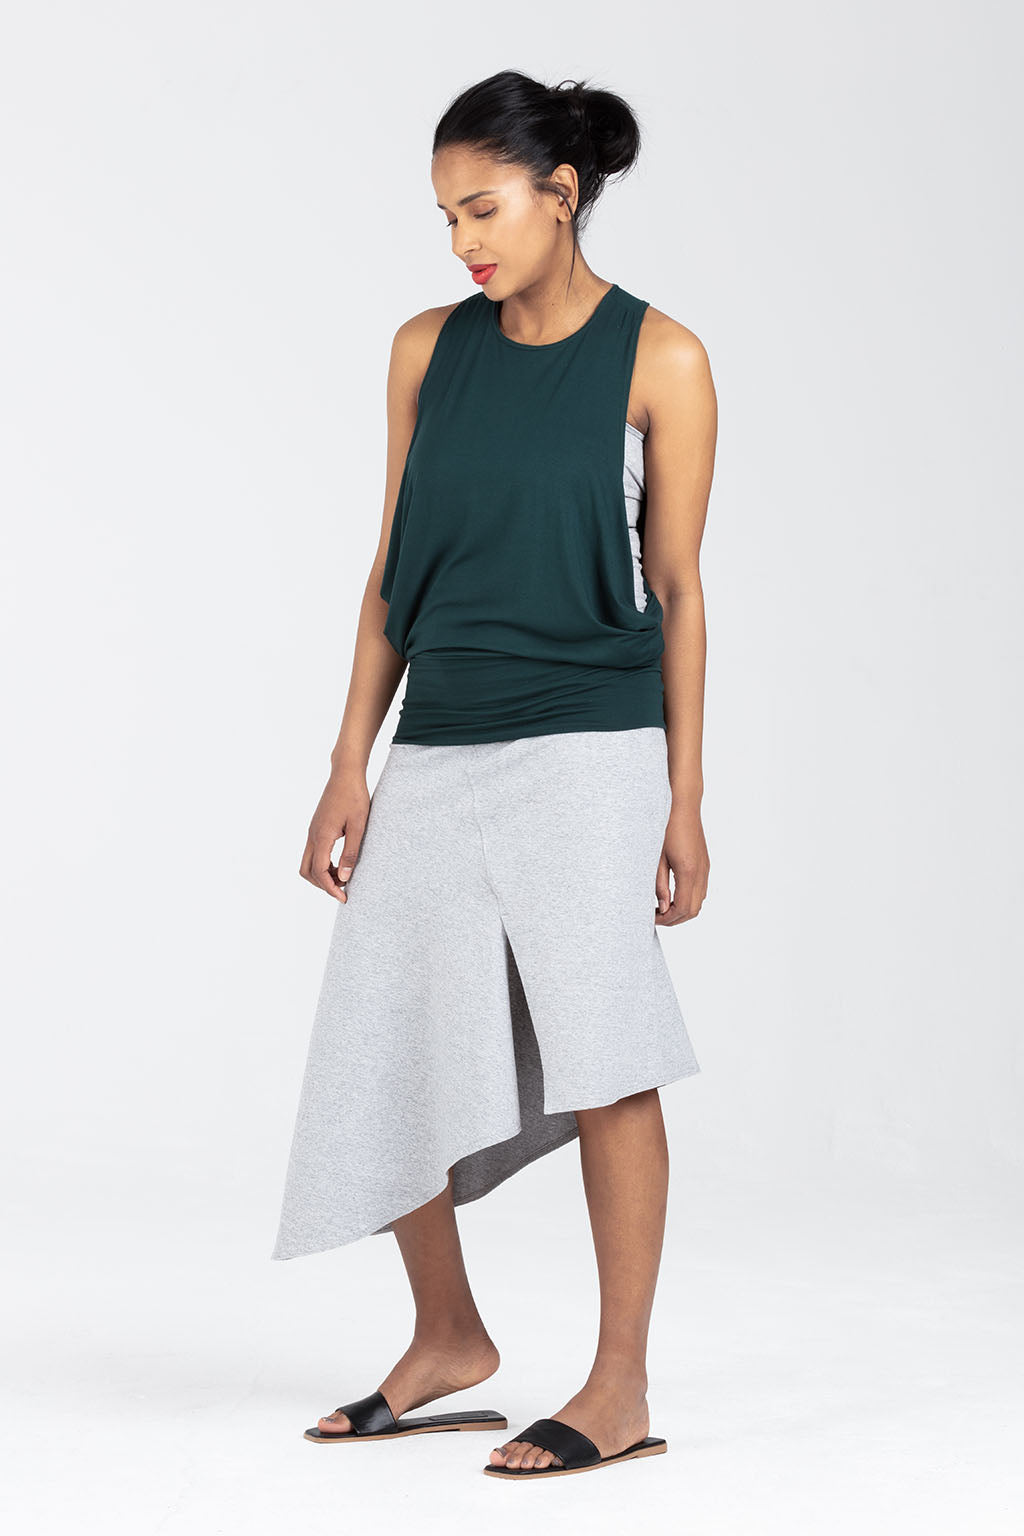 Postnatal Clothes - Asymmetrical Skirt With Postnatal  Support - Adjustable Waist | Rosalind by Sarka London - Side View